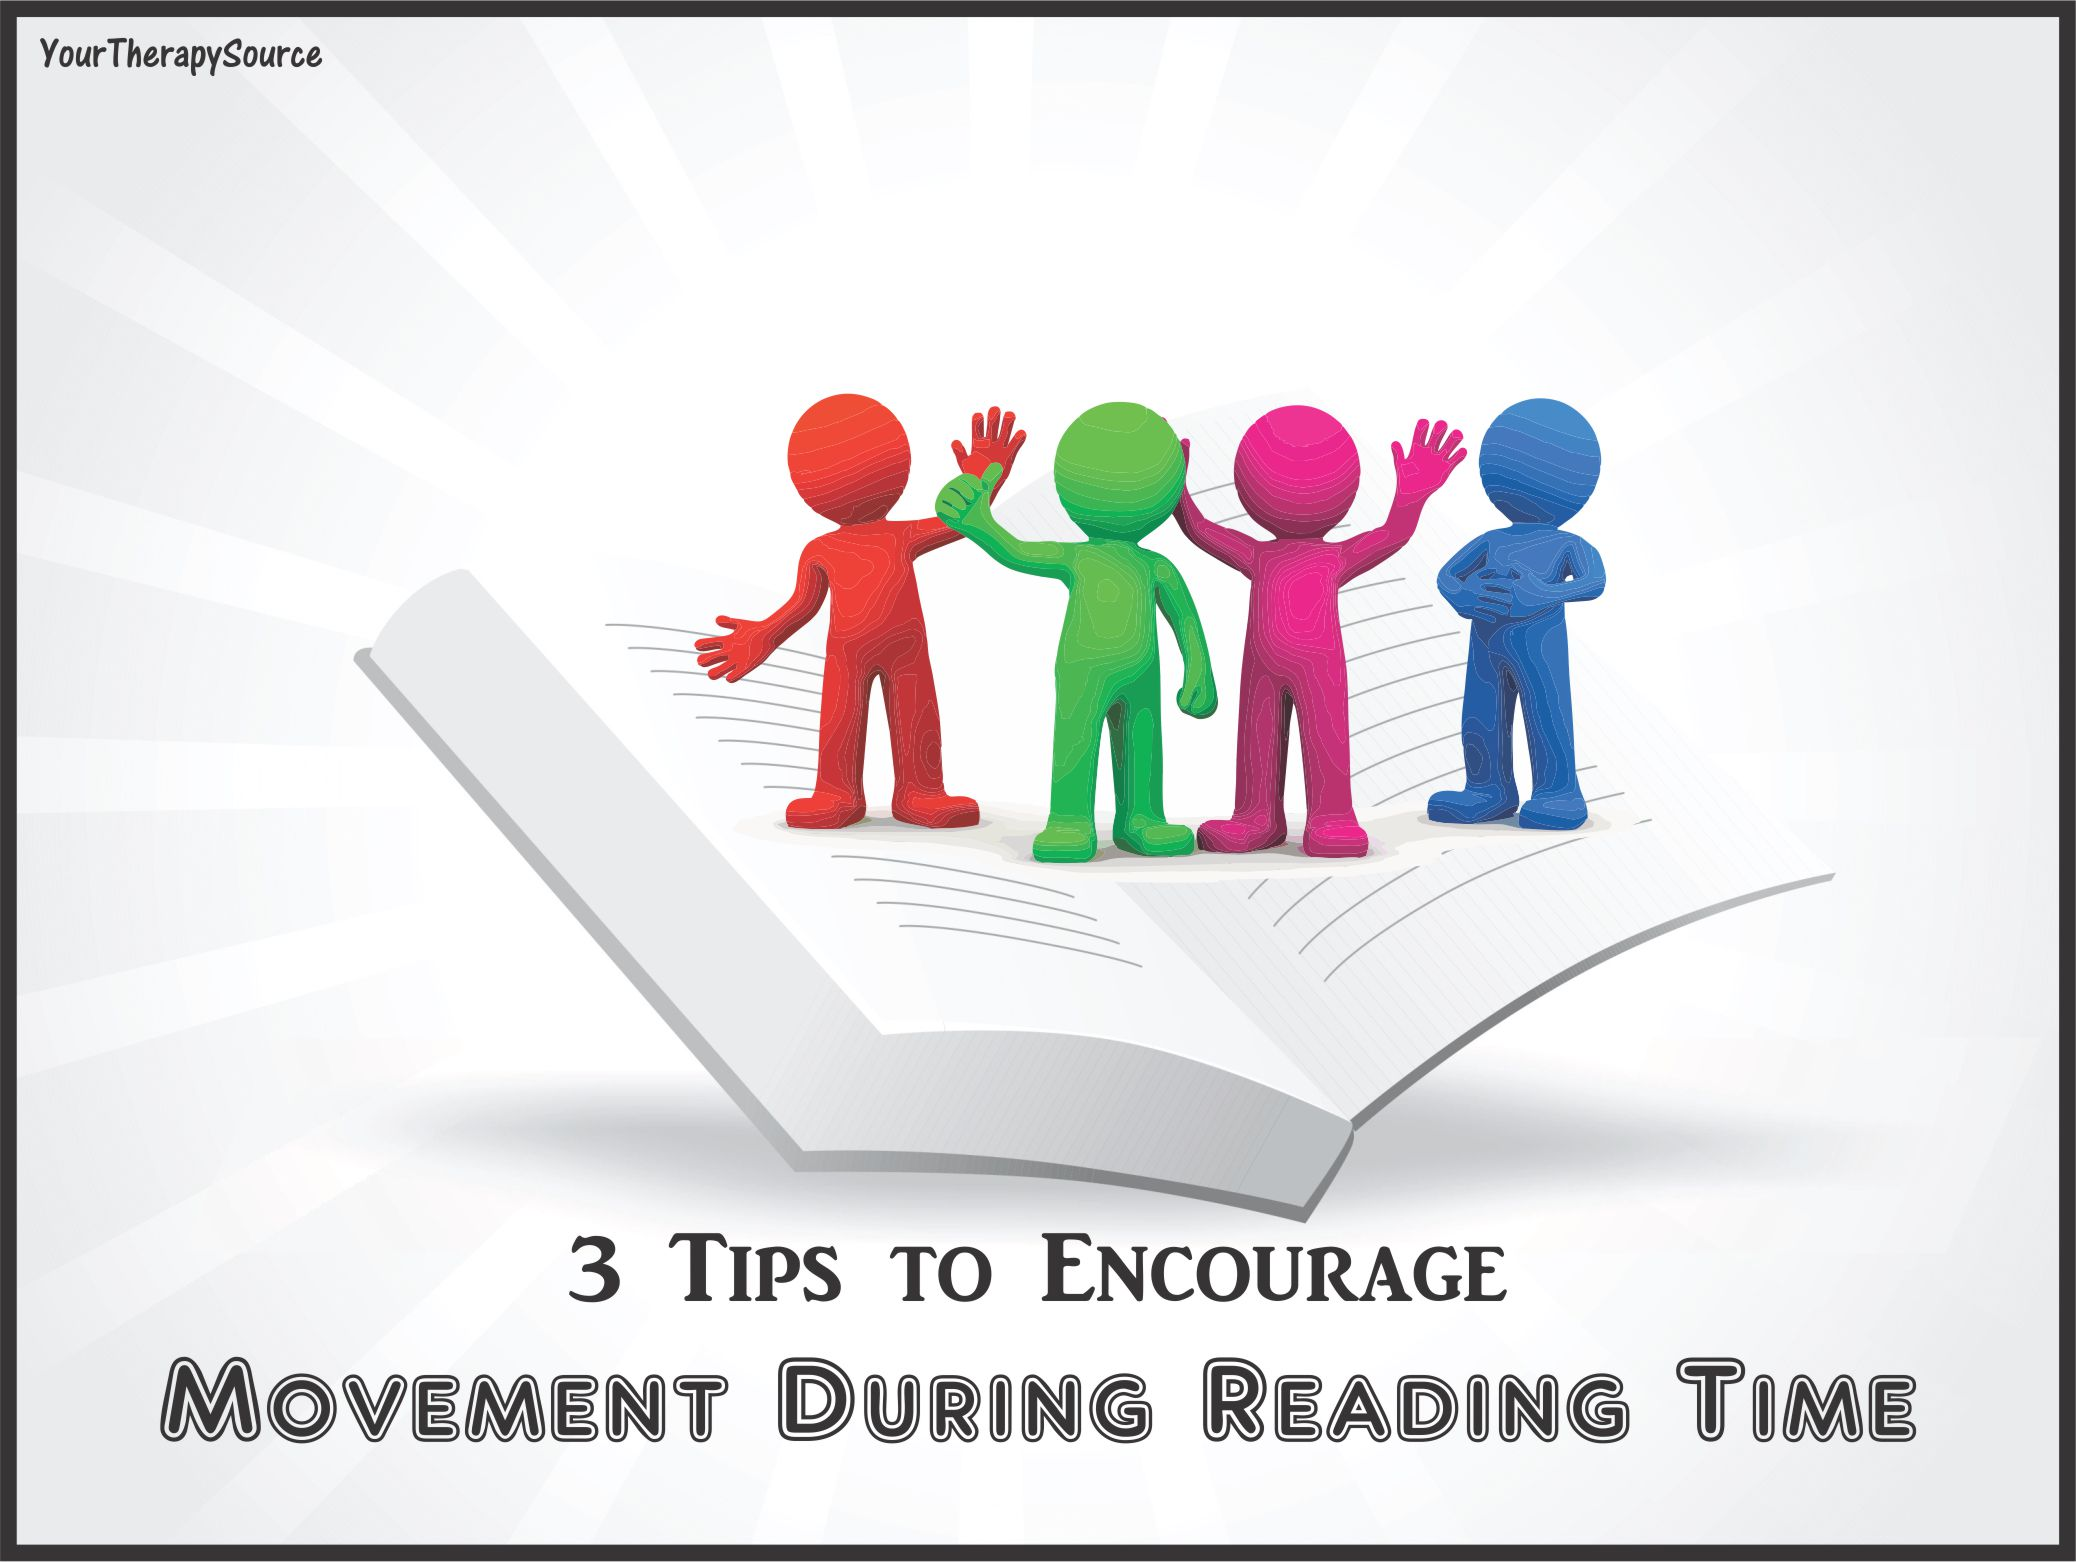 movement during reading time  visit www.YourTherapySource.com for movement activity ideas